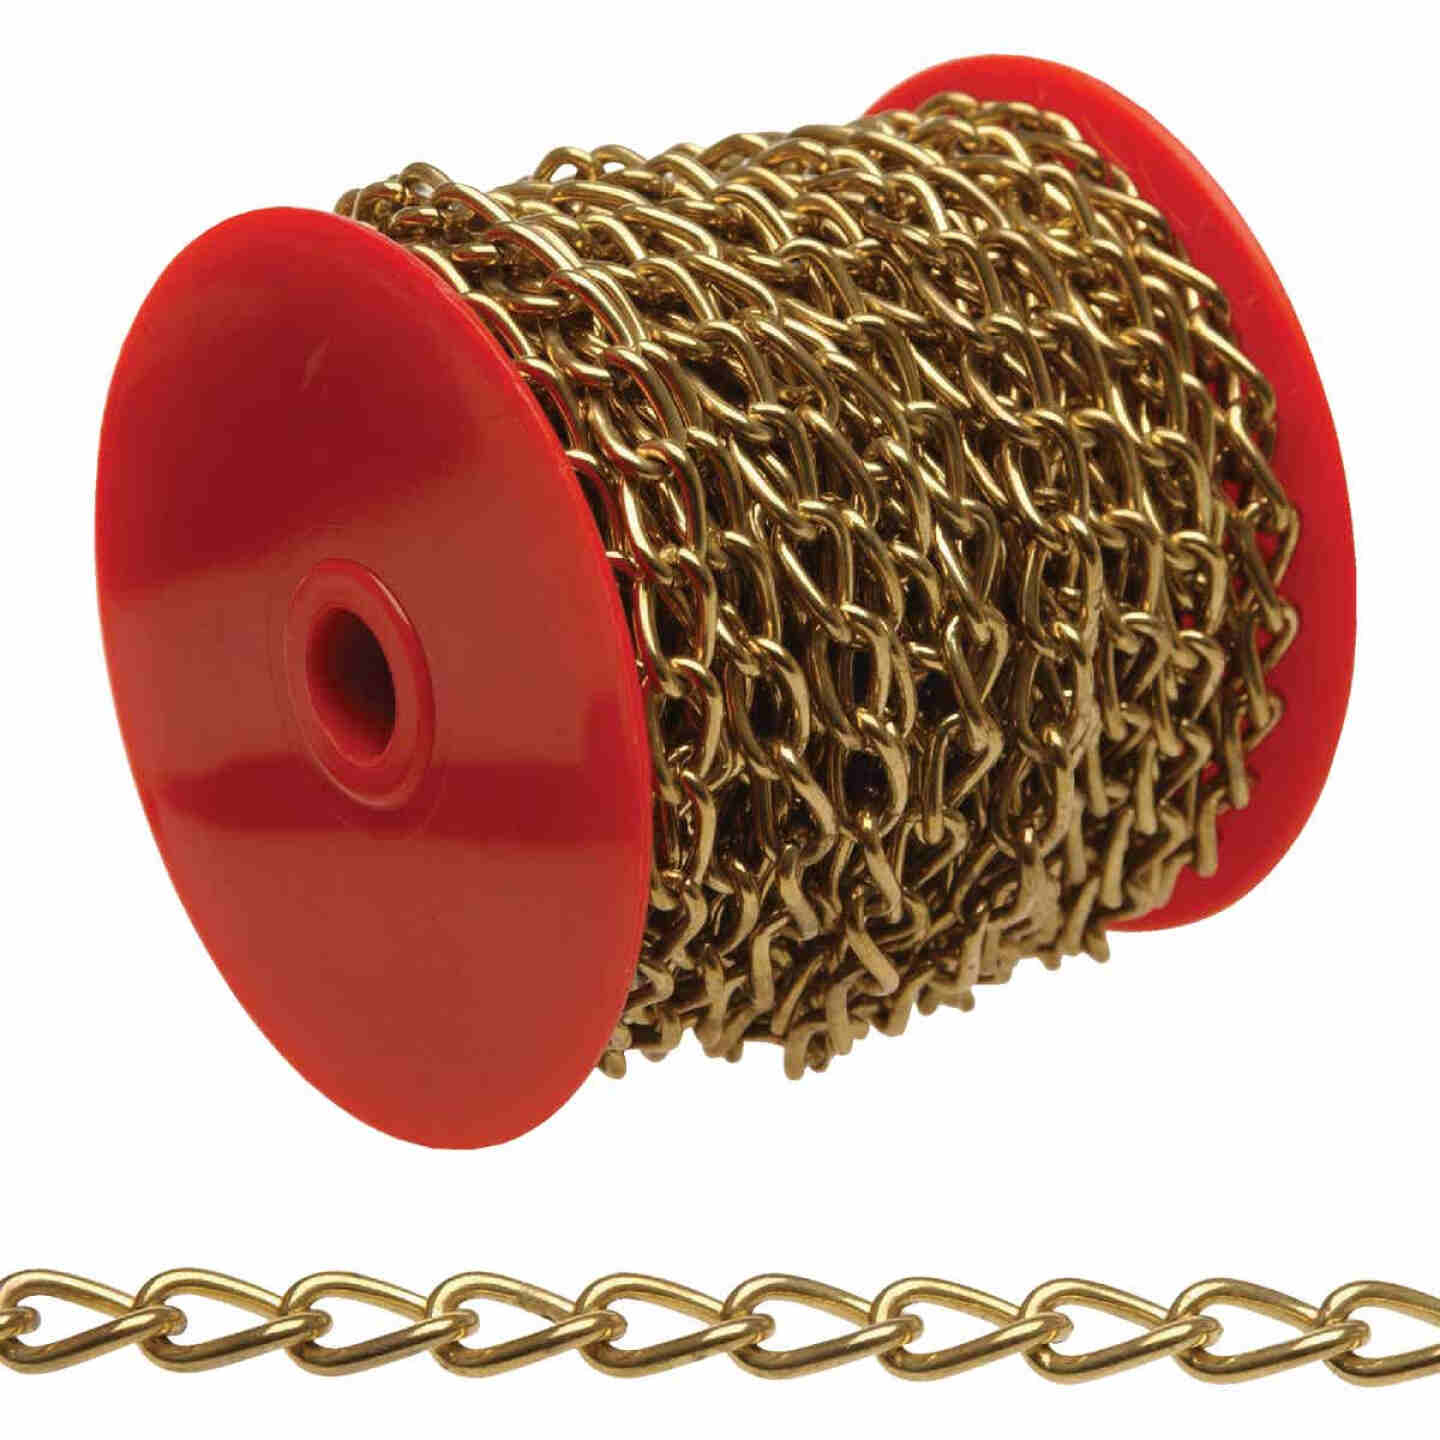 Campbell #200 49 Ft. Brass-Plated Metal Craft Chain Image 1